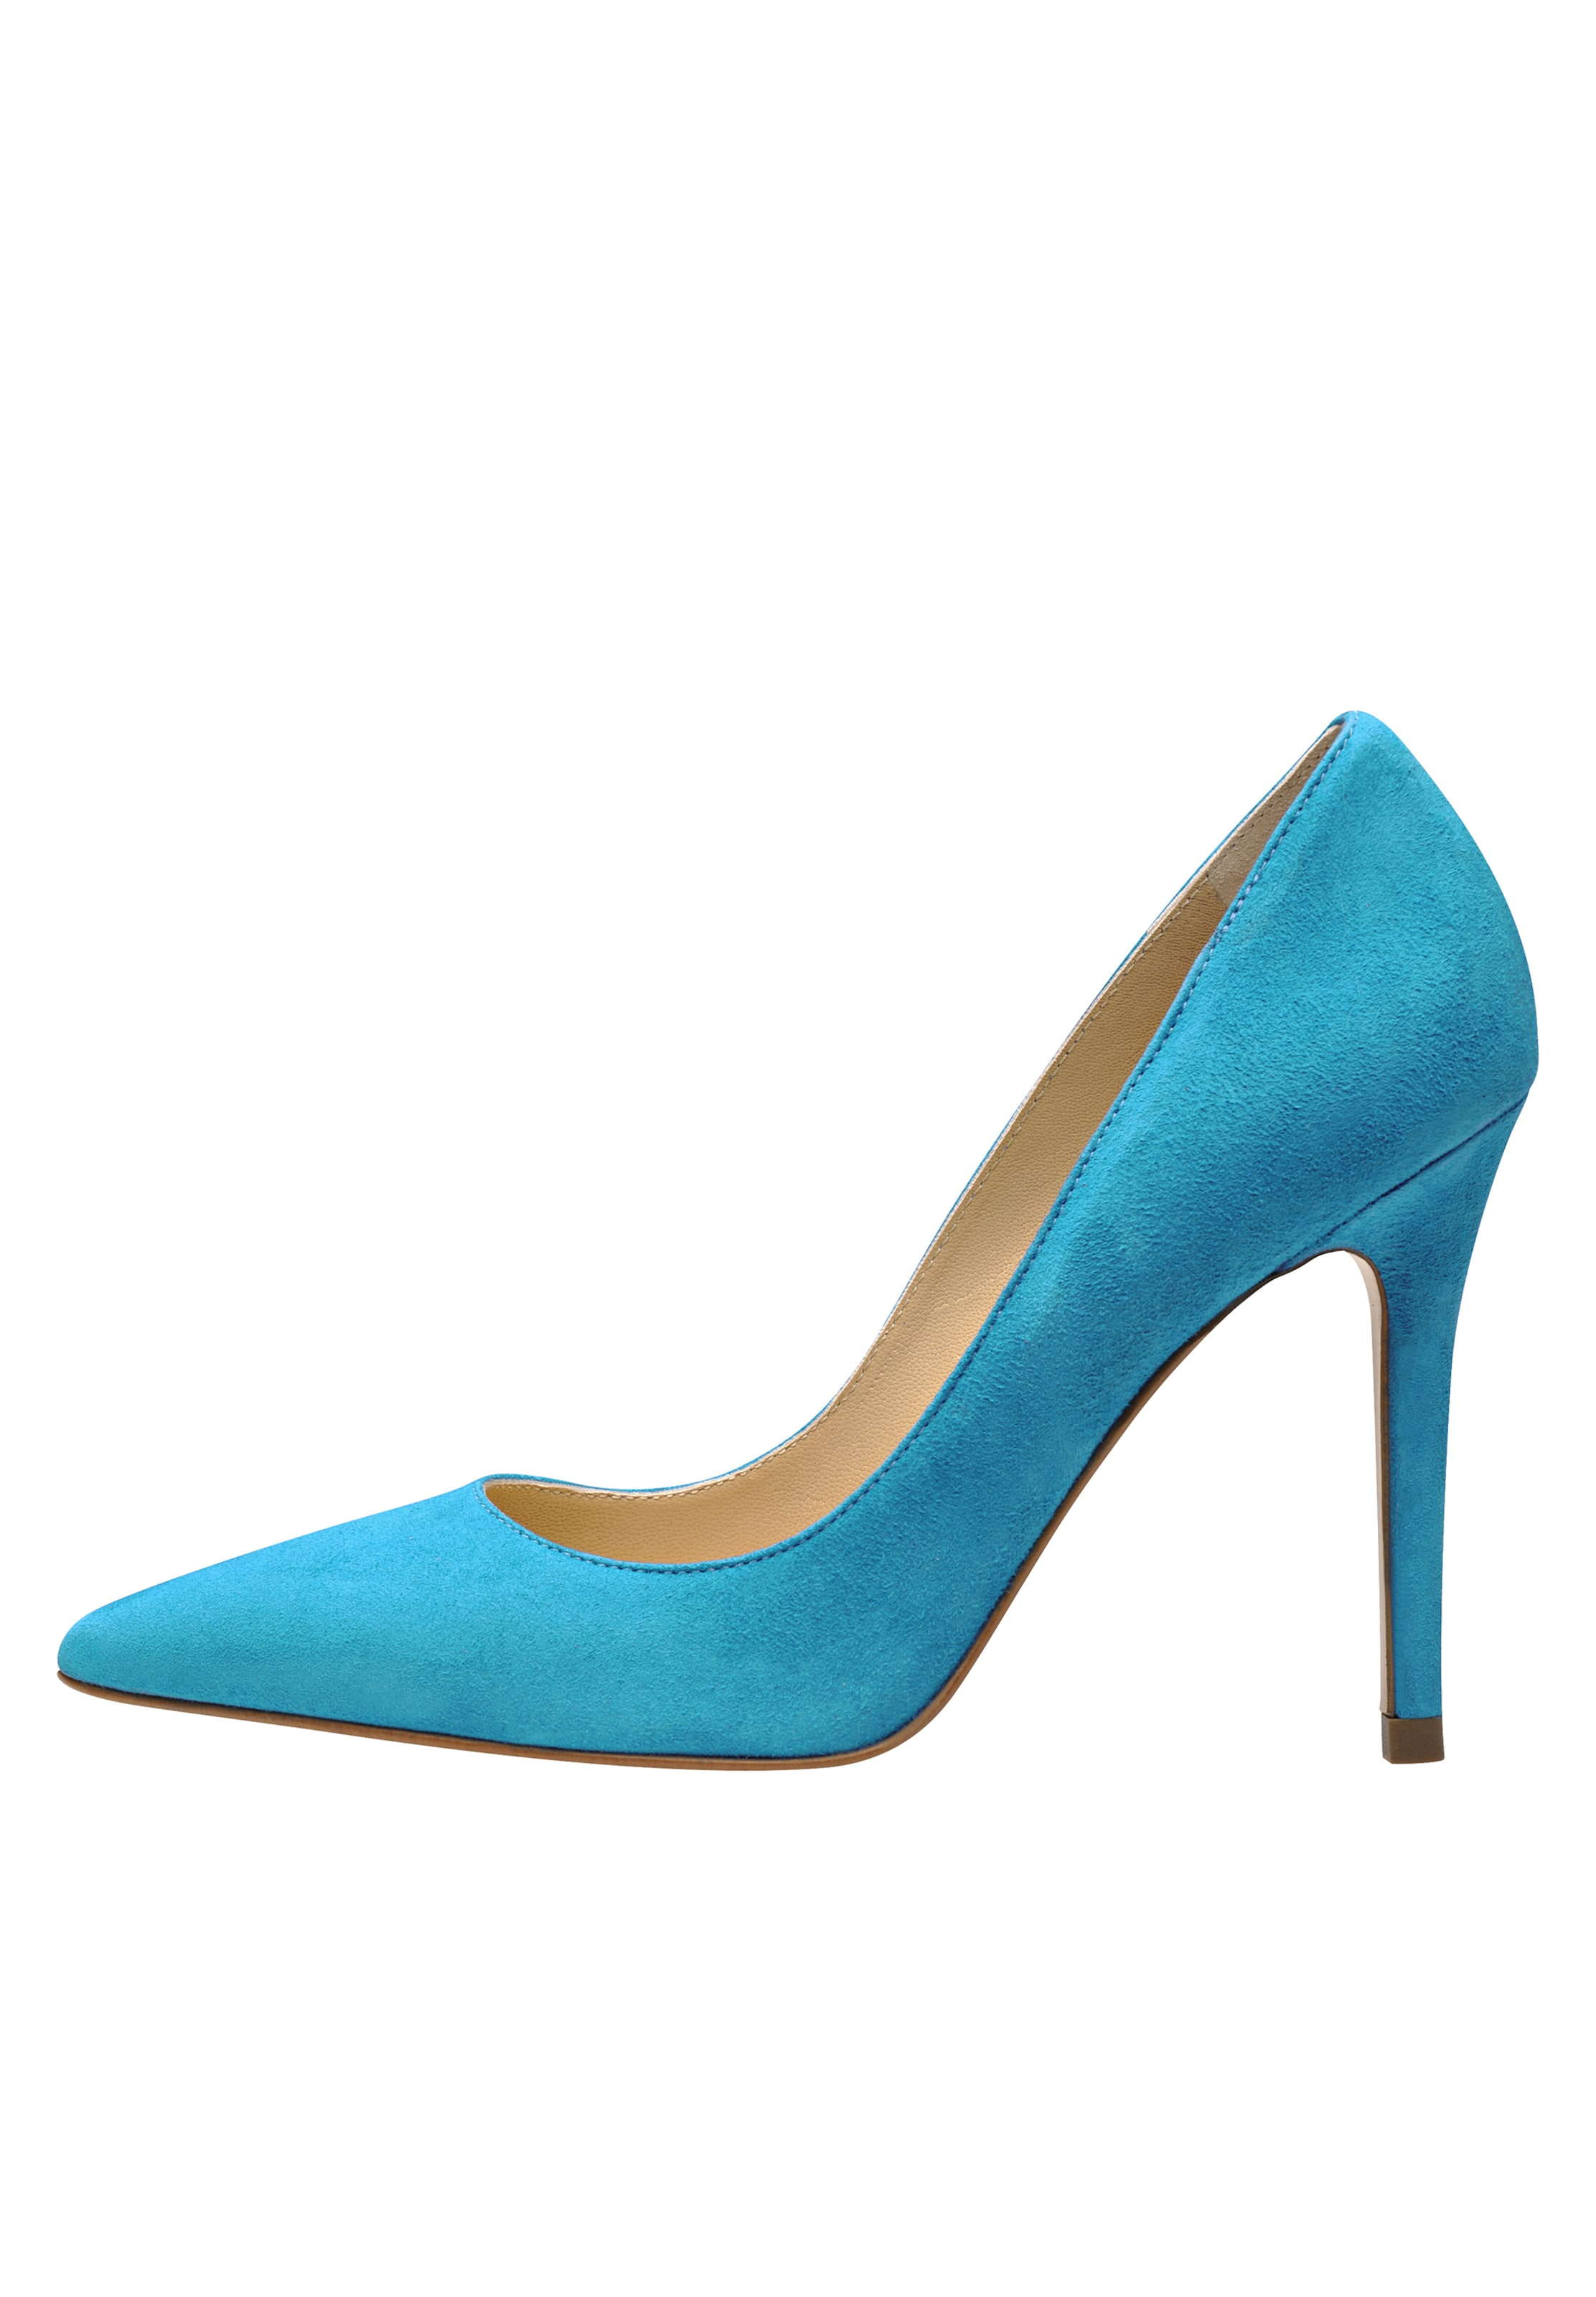 Evita Evita Blau Blau Damen Pumps Evita In Pumps Damen In Damen FTlK1Jc